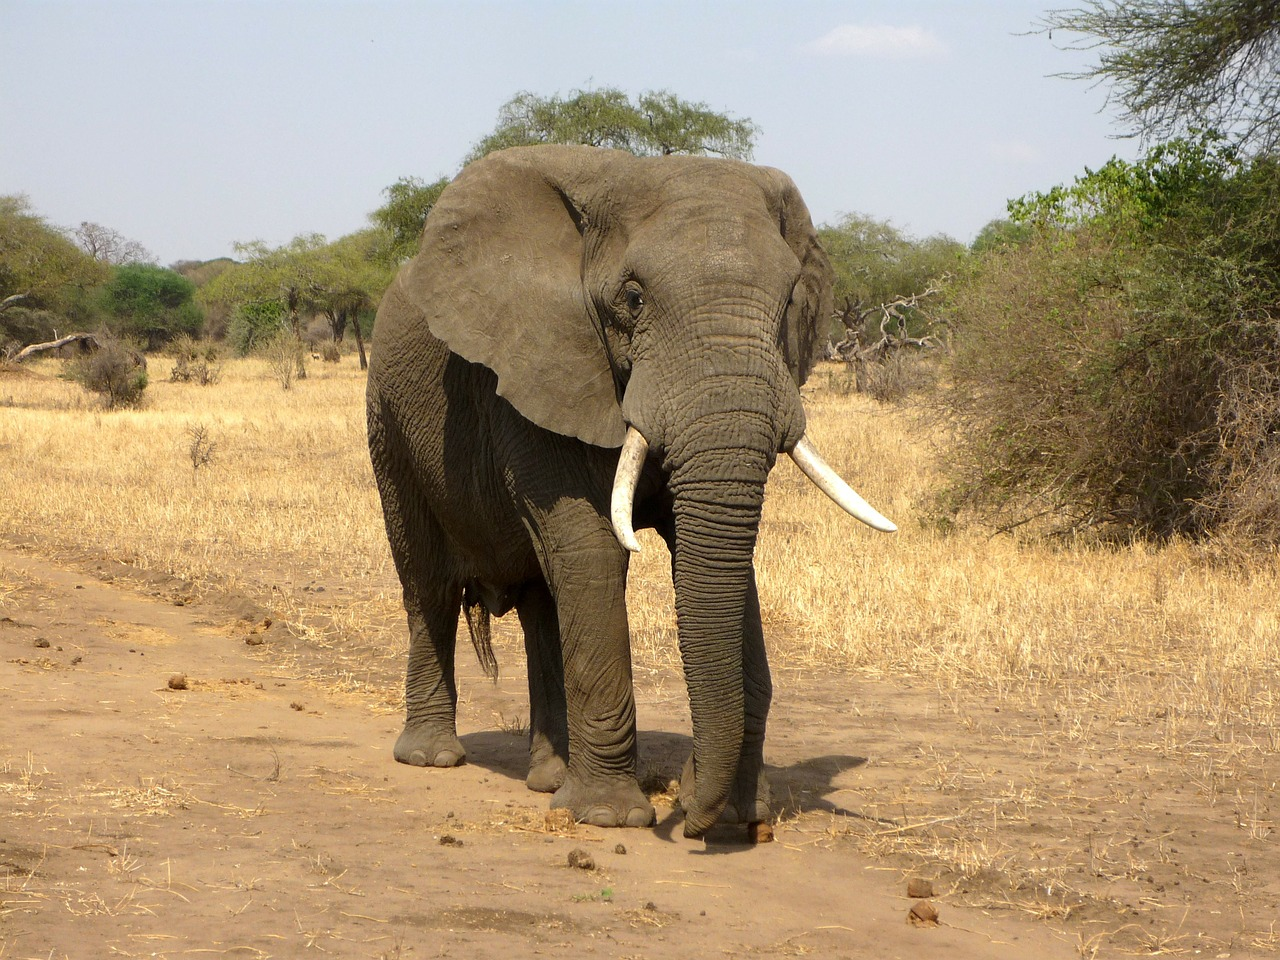 Elephants are commonly killed because their ivory tusks rake in big money on the black market.